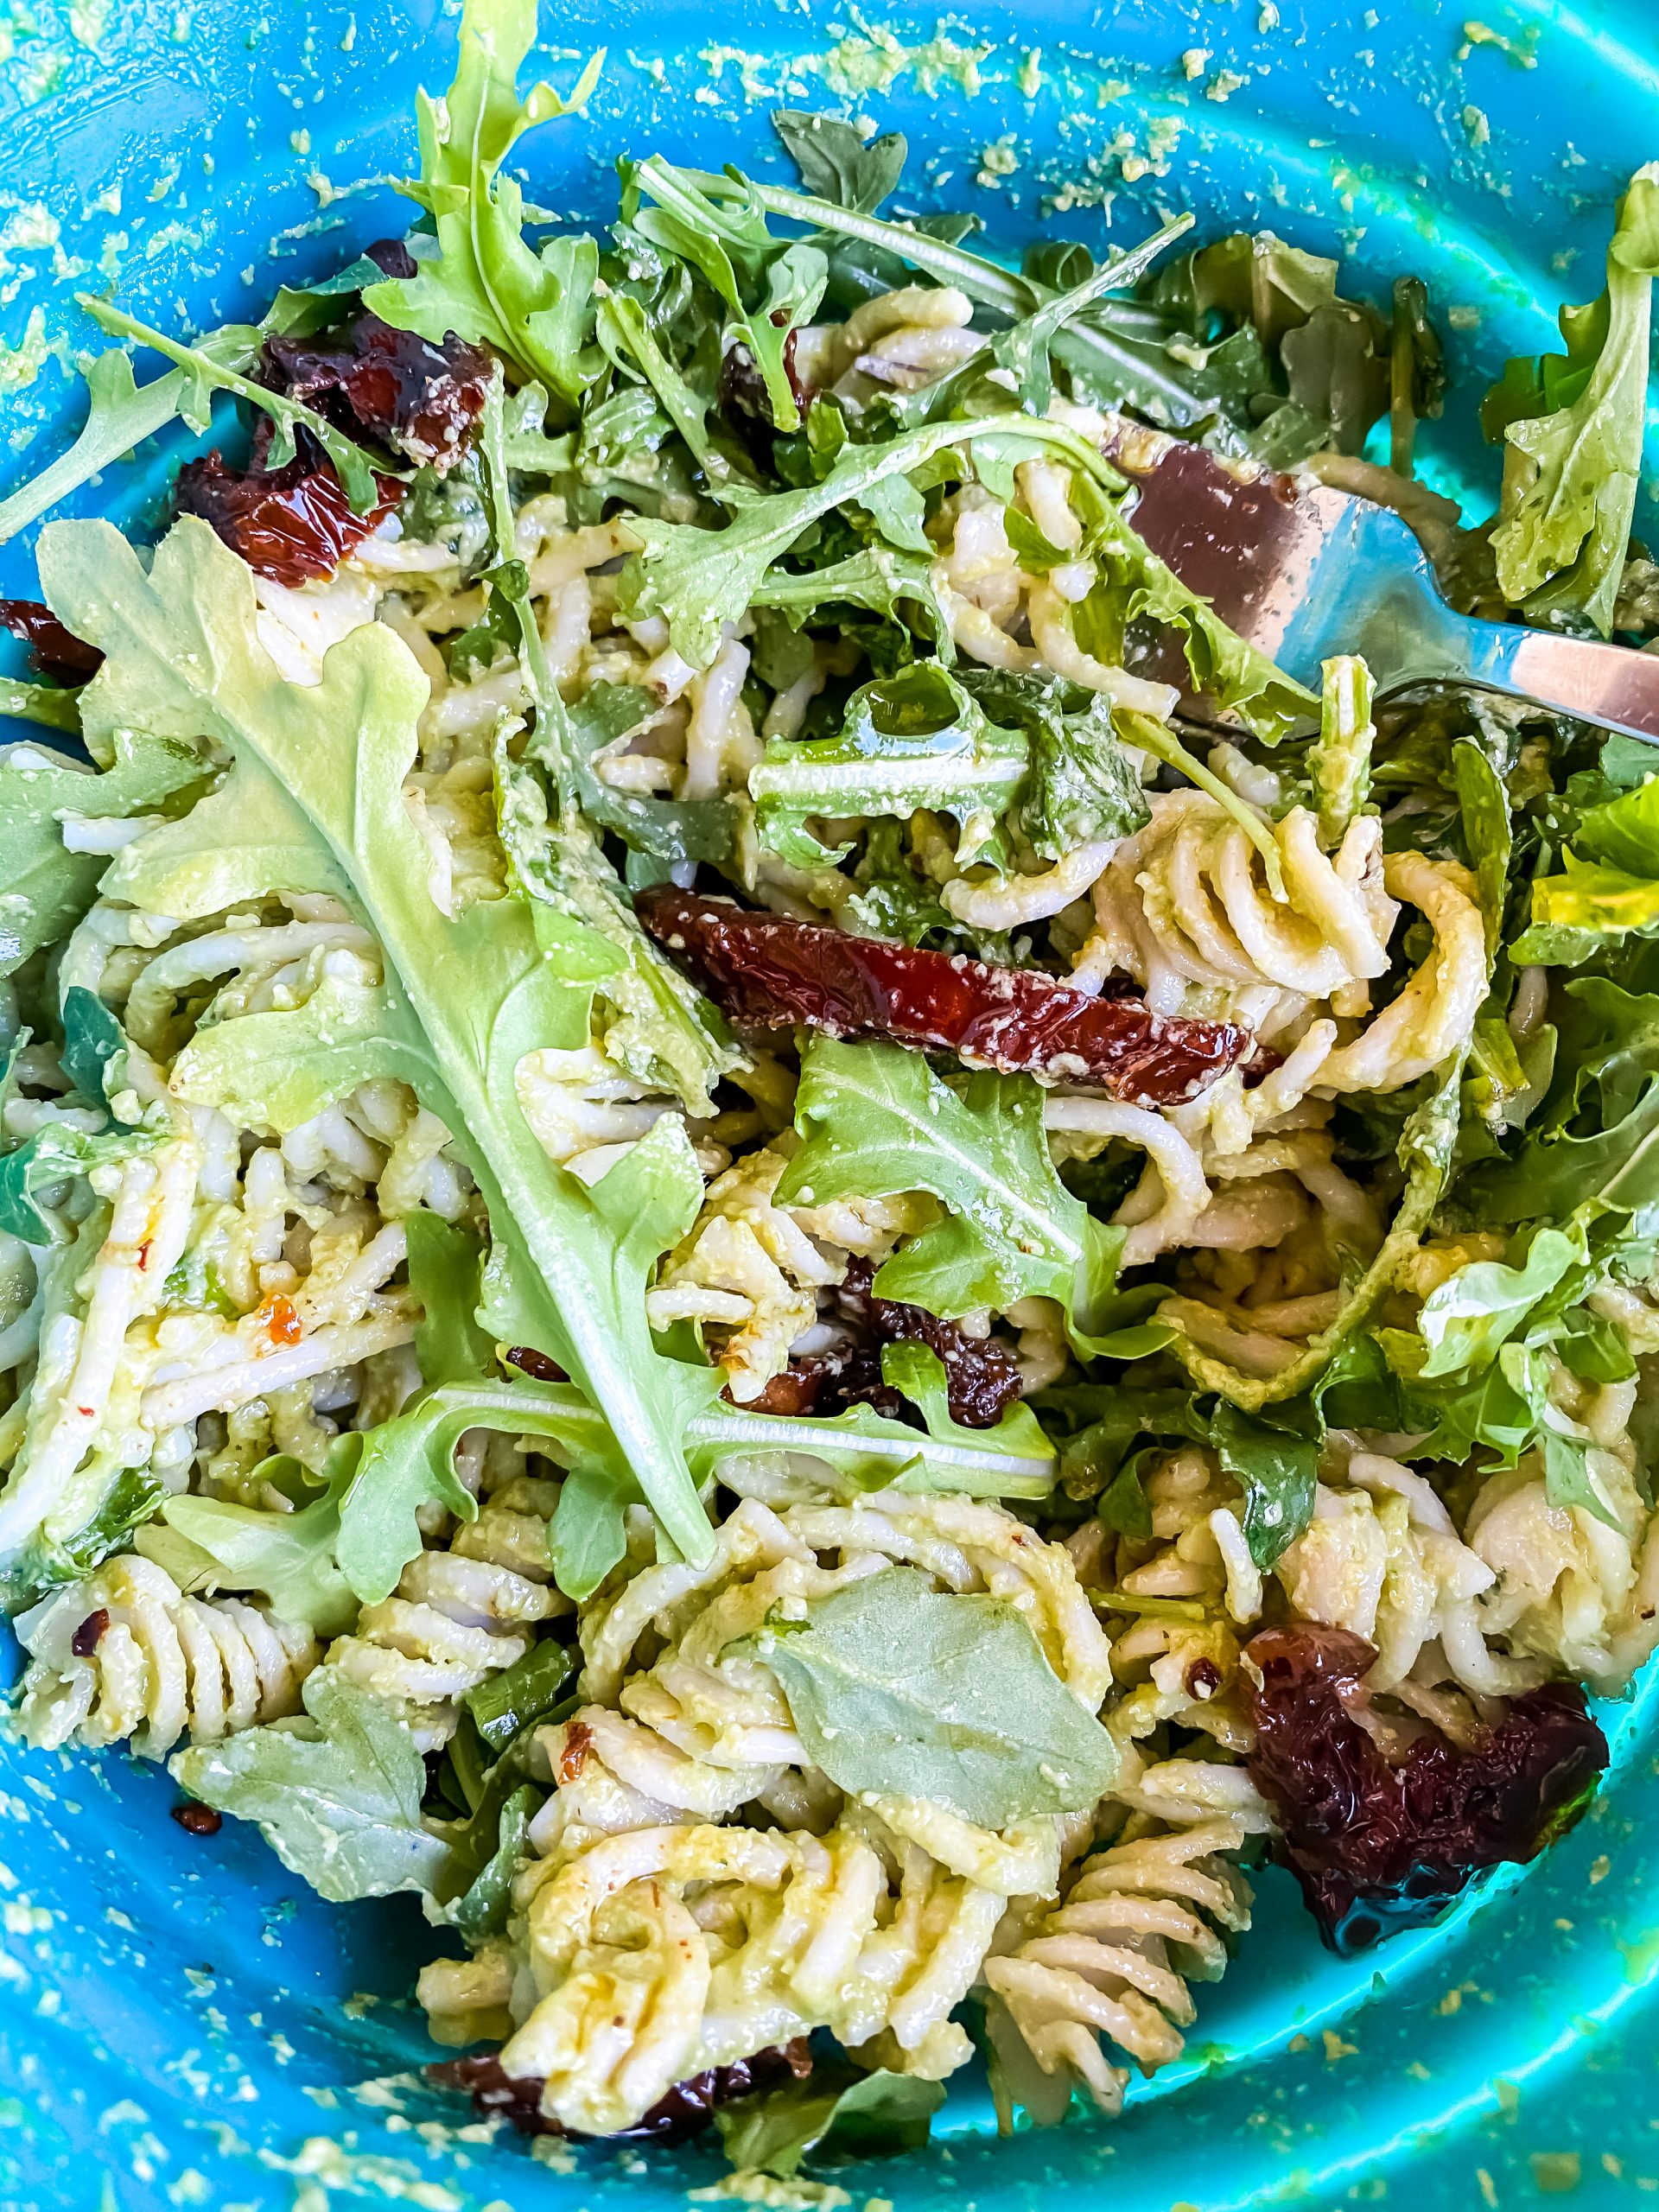 Pea Pesto Pasta ingredients tossed and ready to serve!